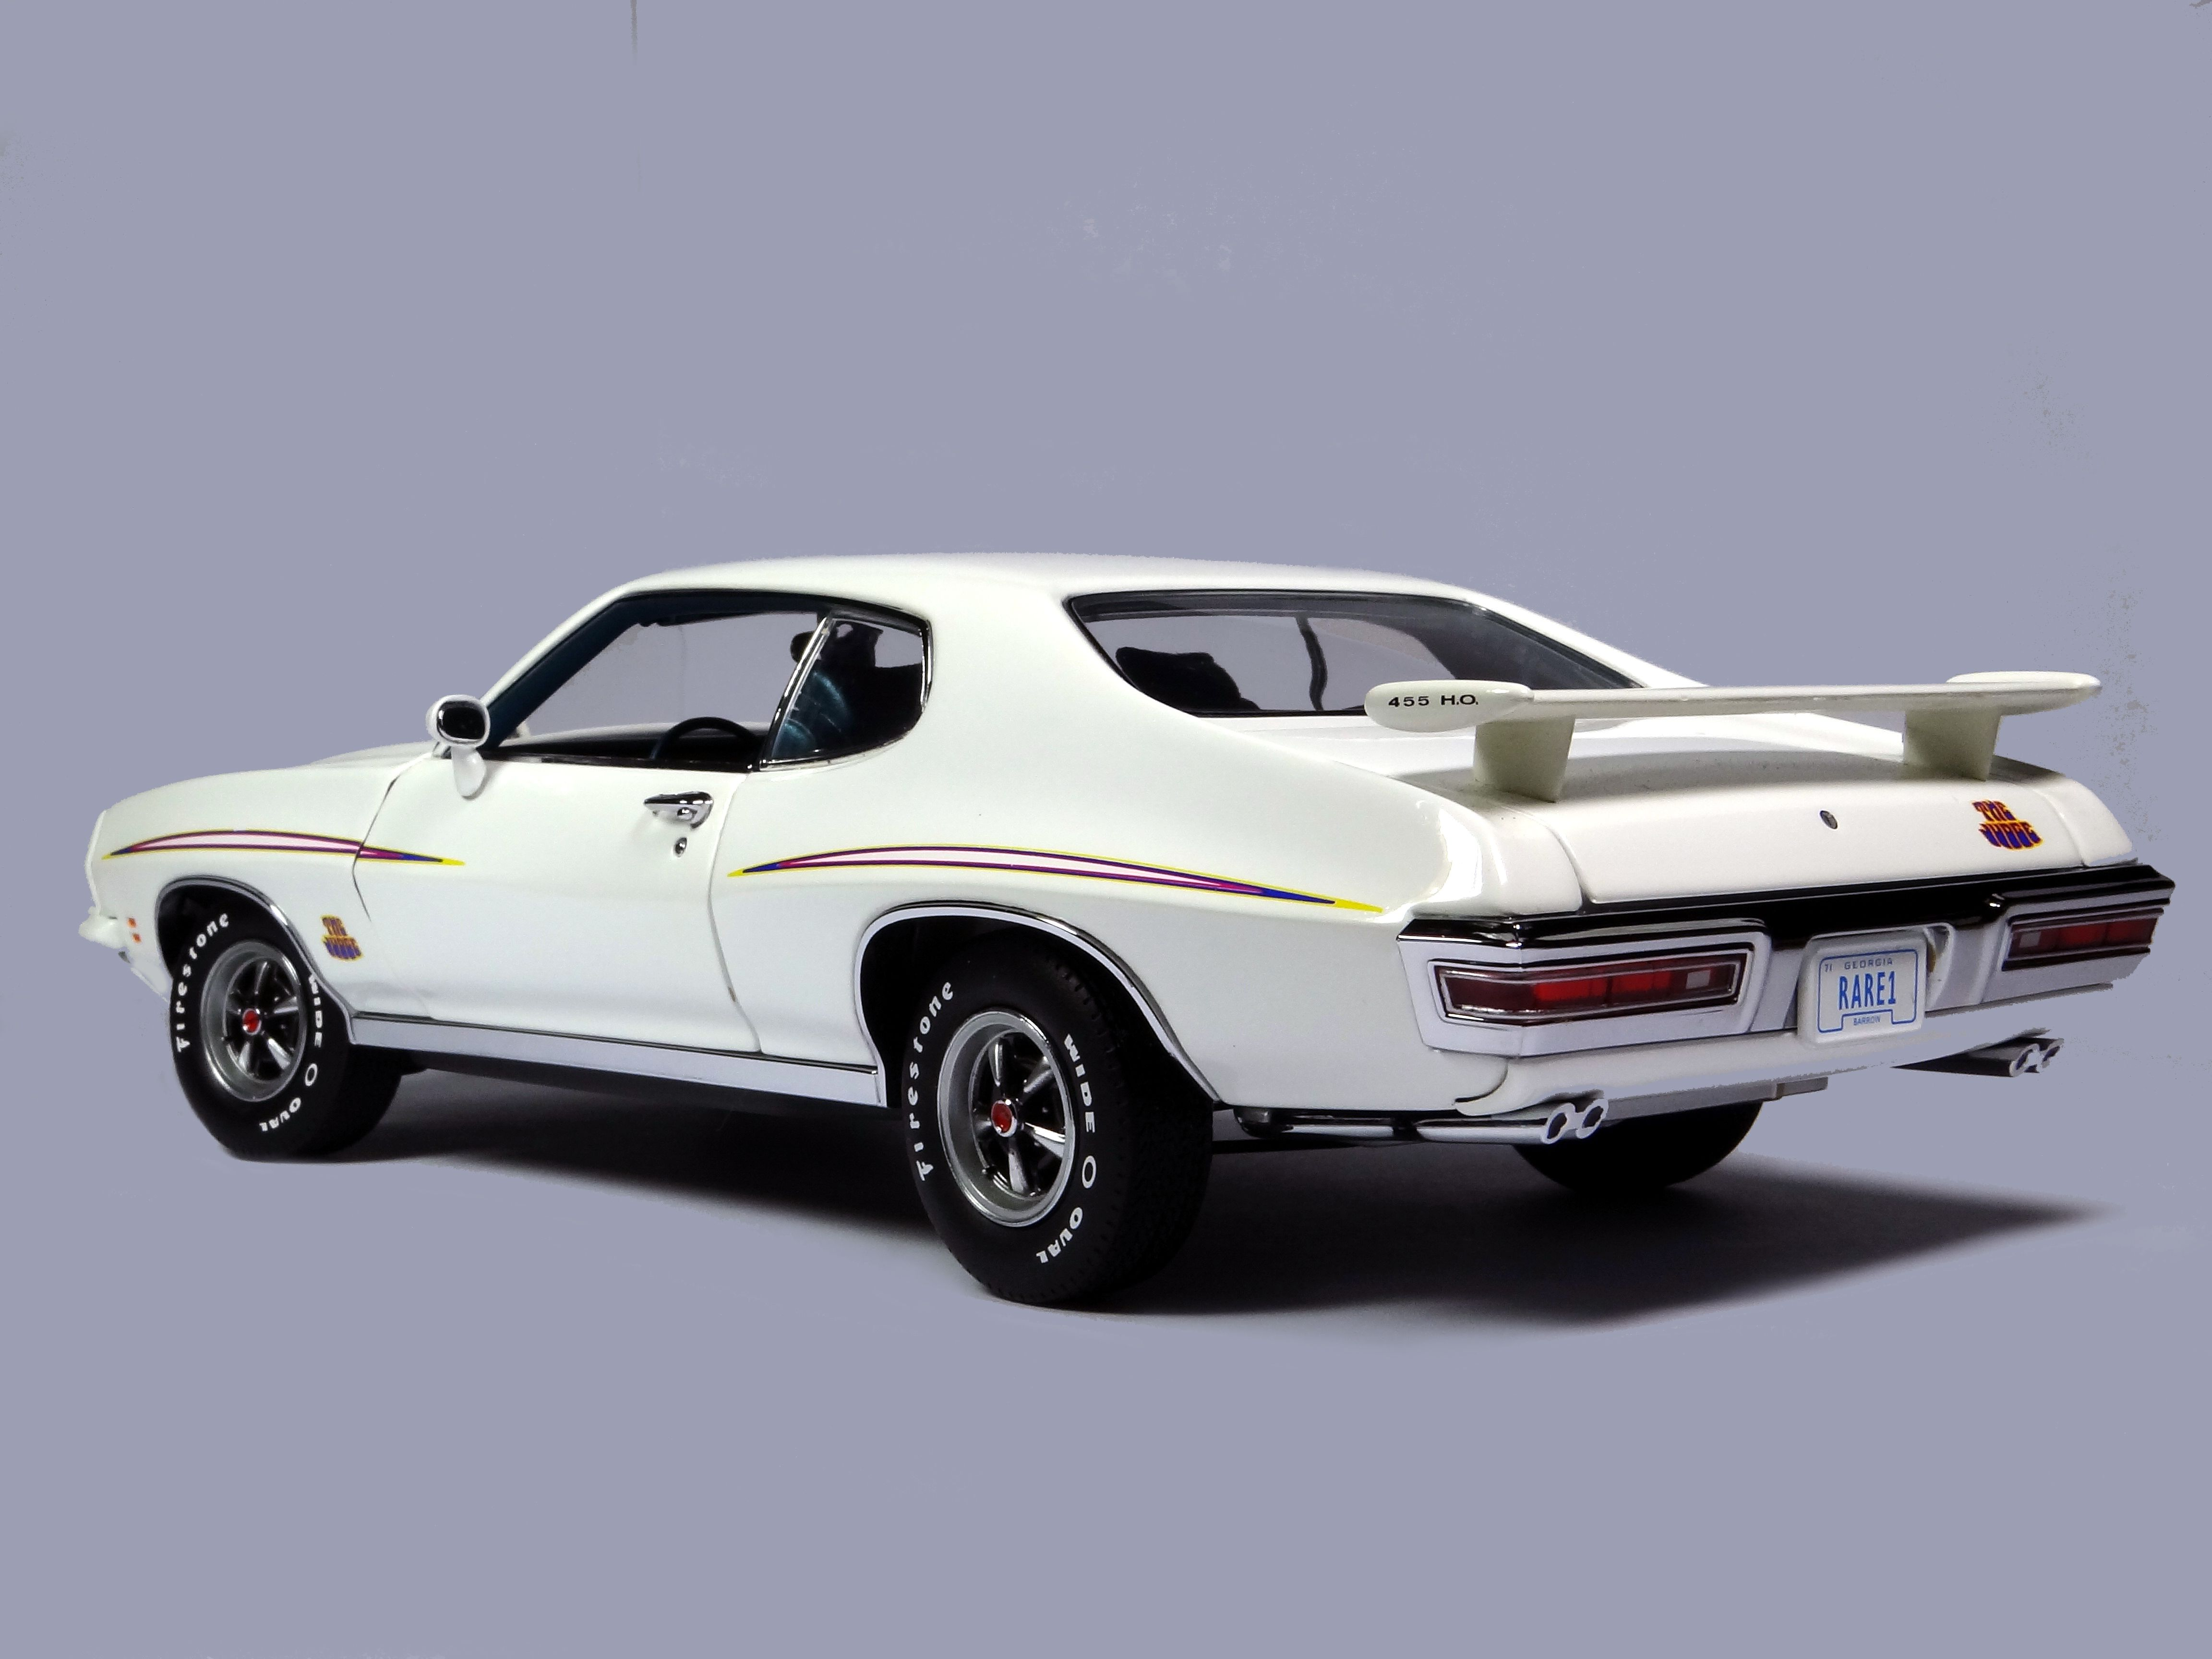 1971 pontiac gto the judge 455 similar to what the crow used to look like